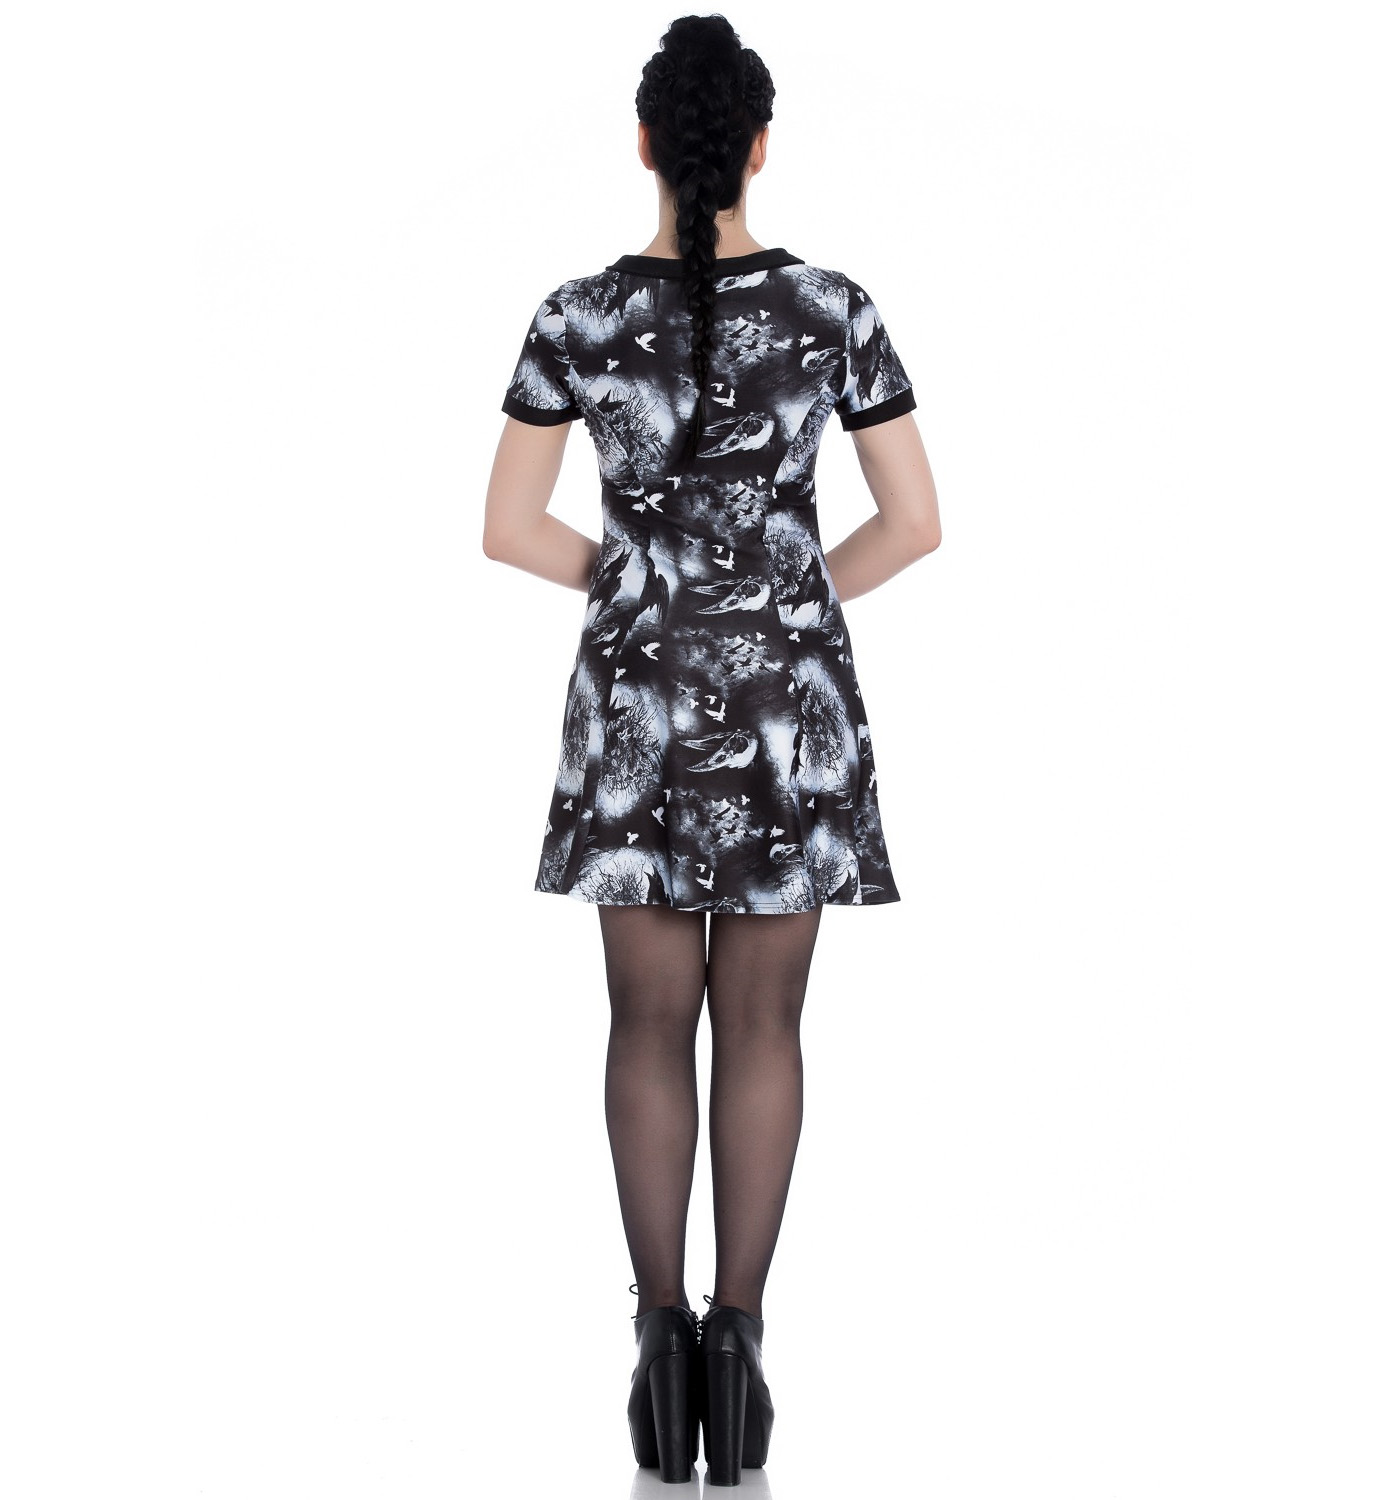 Hell-Bunny-Alternative-Goth-Punk-Black-Mini-Dress-CROWS-NEST-Witch-All-Sizes thumbnail 5